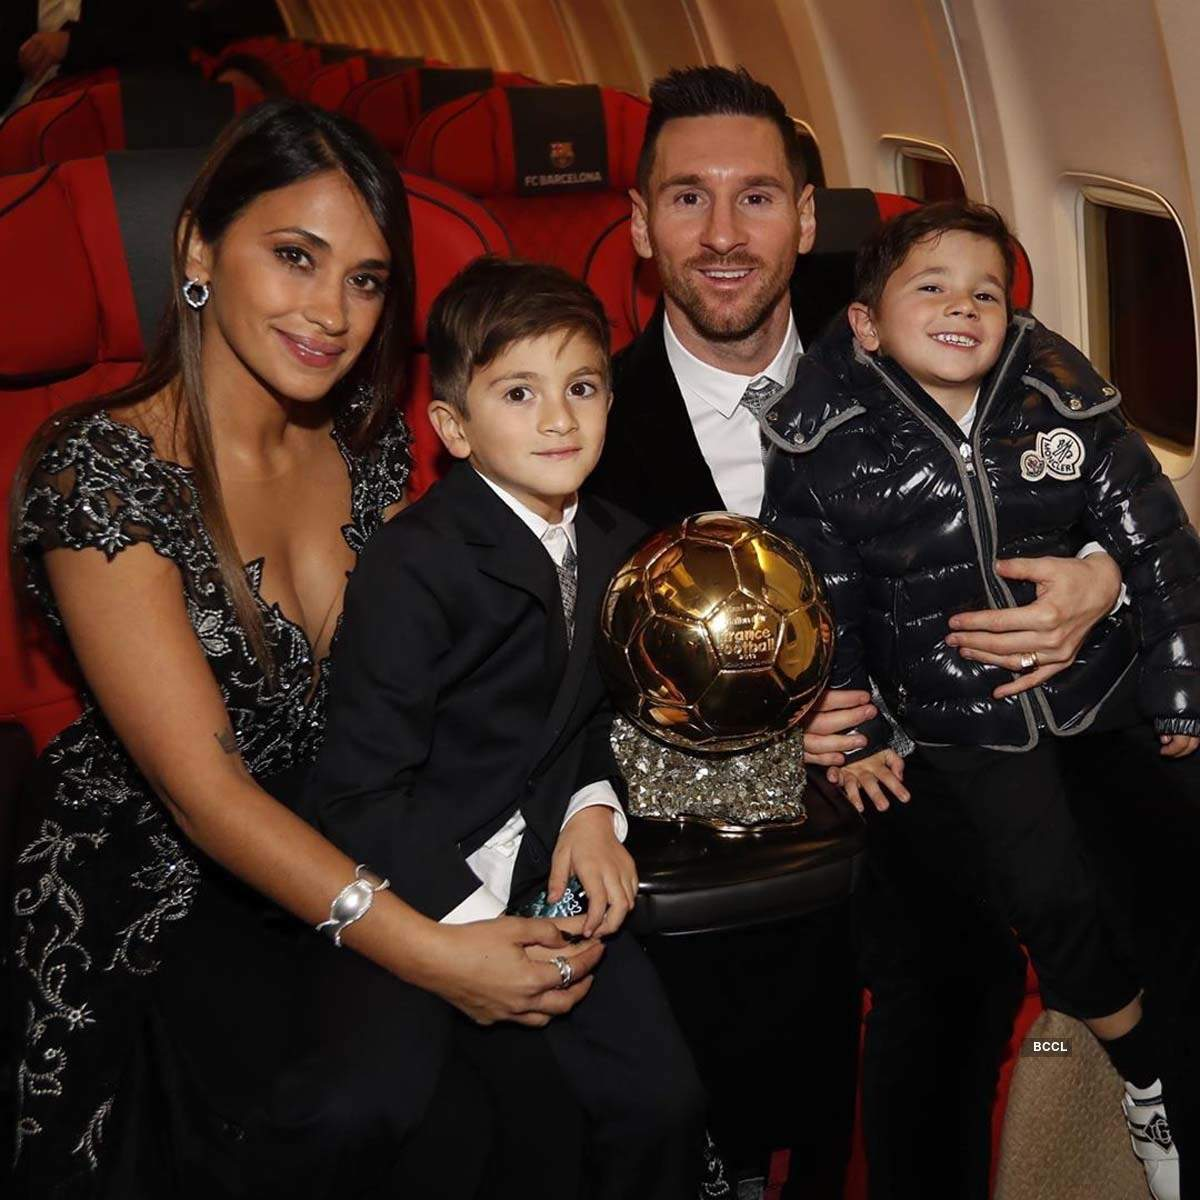 These PDA moments of Lionel Messi and Antonella Roccuzzo are winning the internet